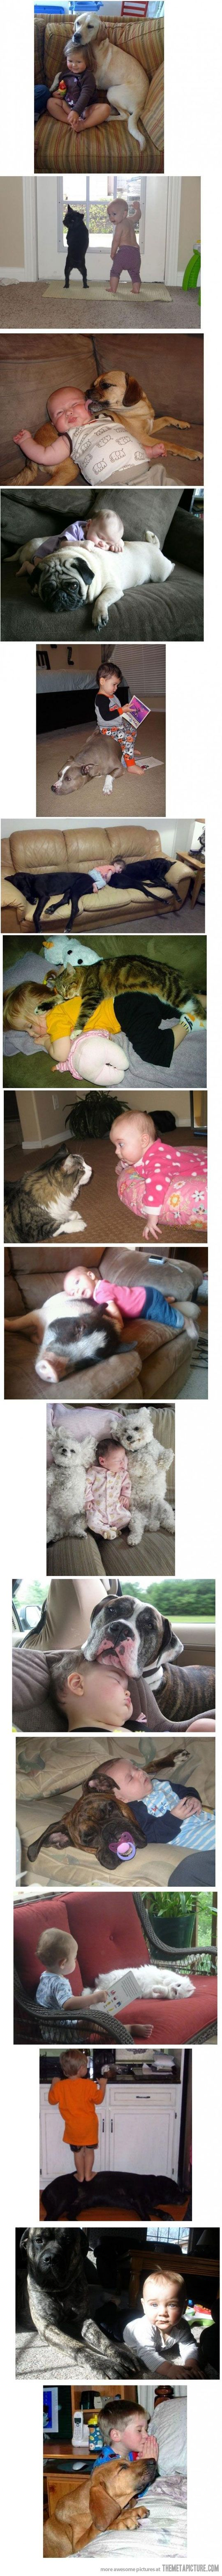 PET THERAPY! Kids and their pets